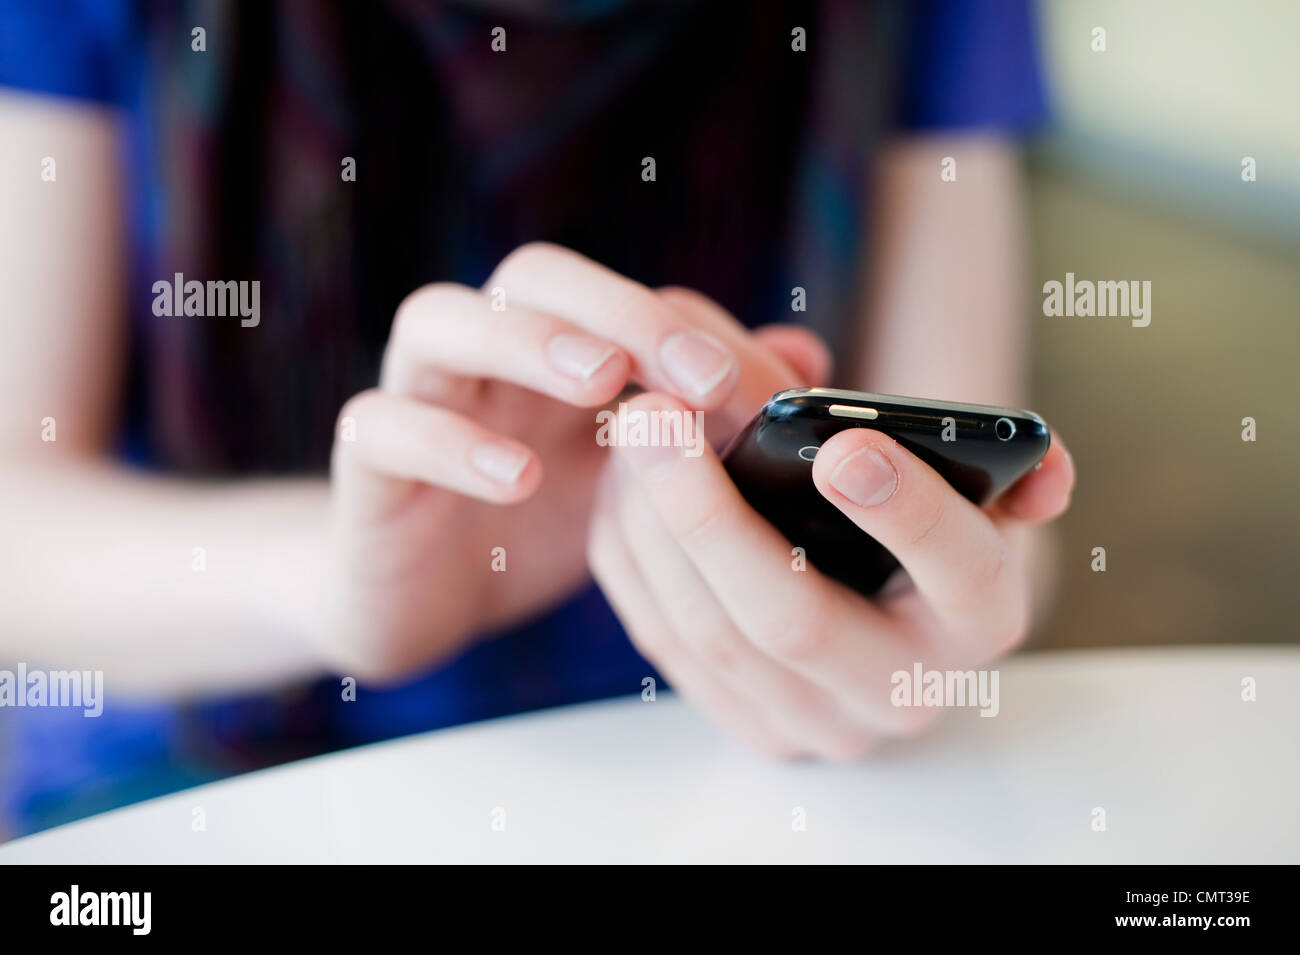 Close-up of human hands holding mobile phone - Stock Image